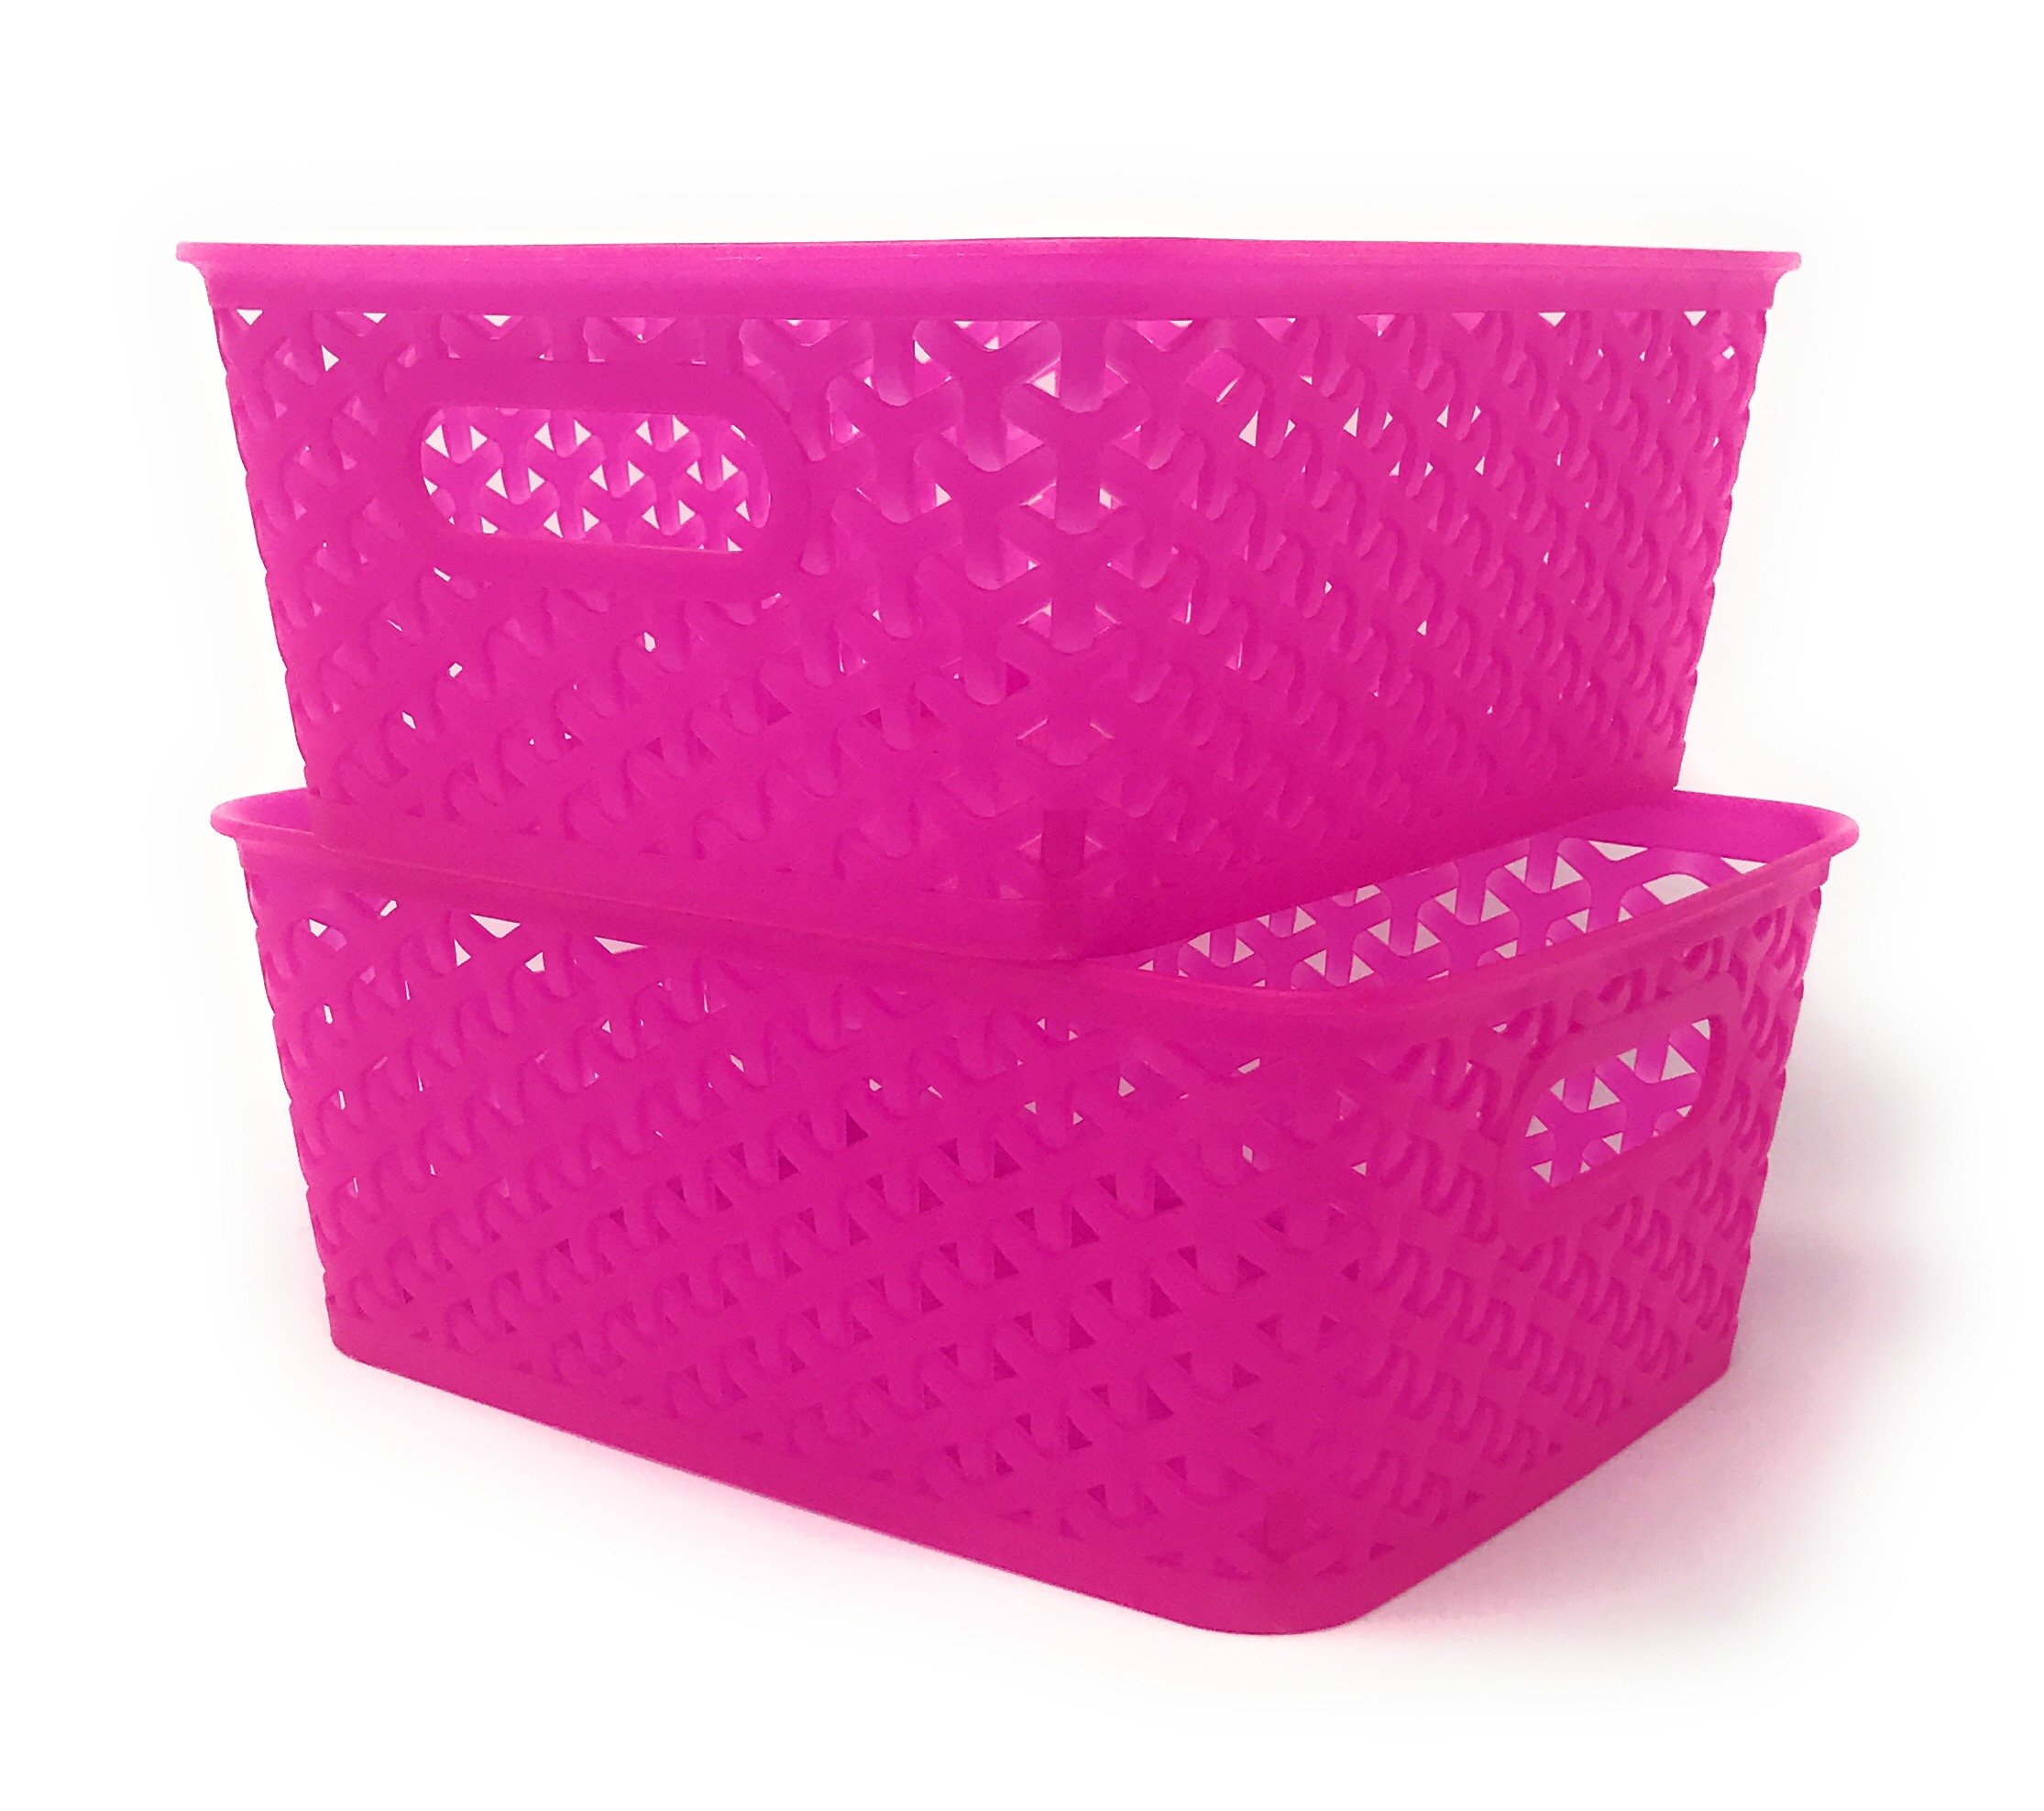 Basket Weave Plastic Storage Bin Set of 2 (10 x 8 x 4, Translucent Hot Pink)